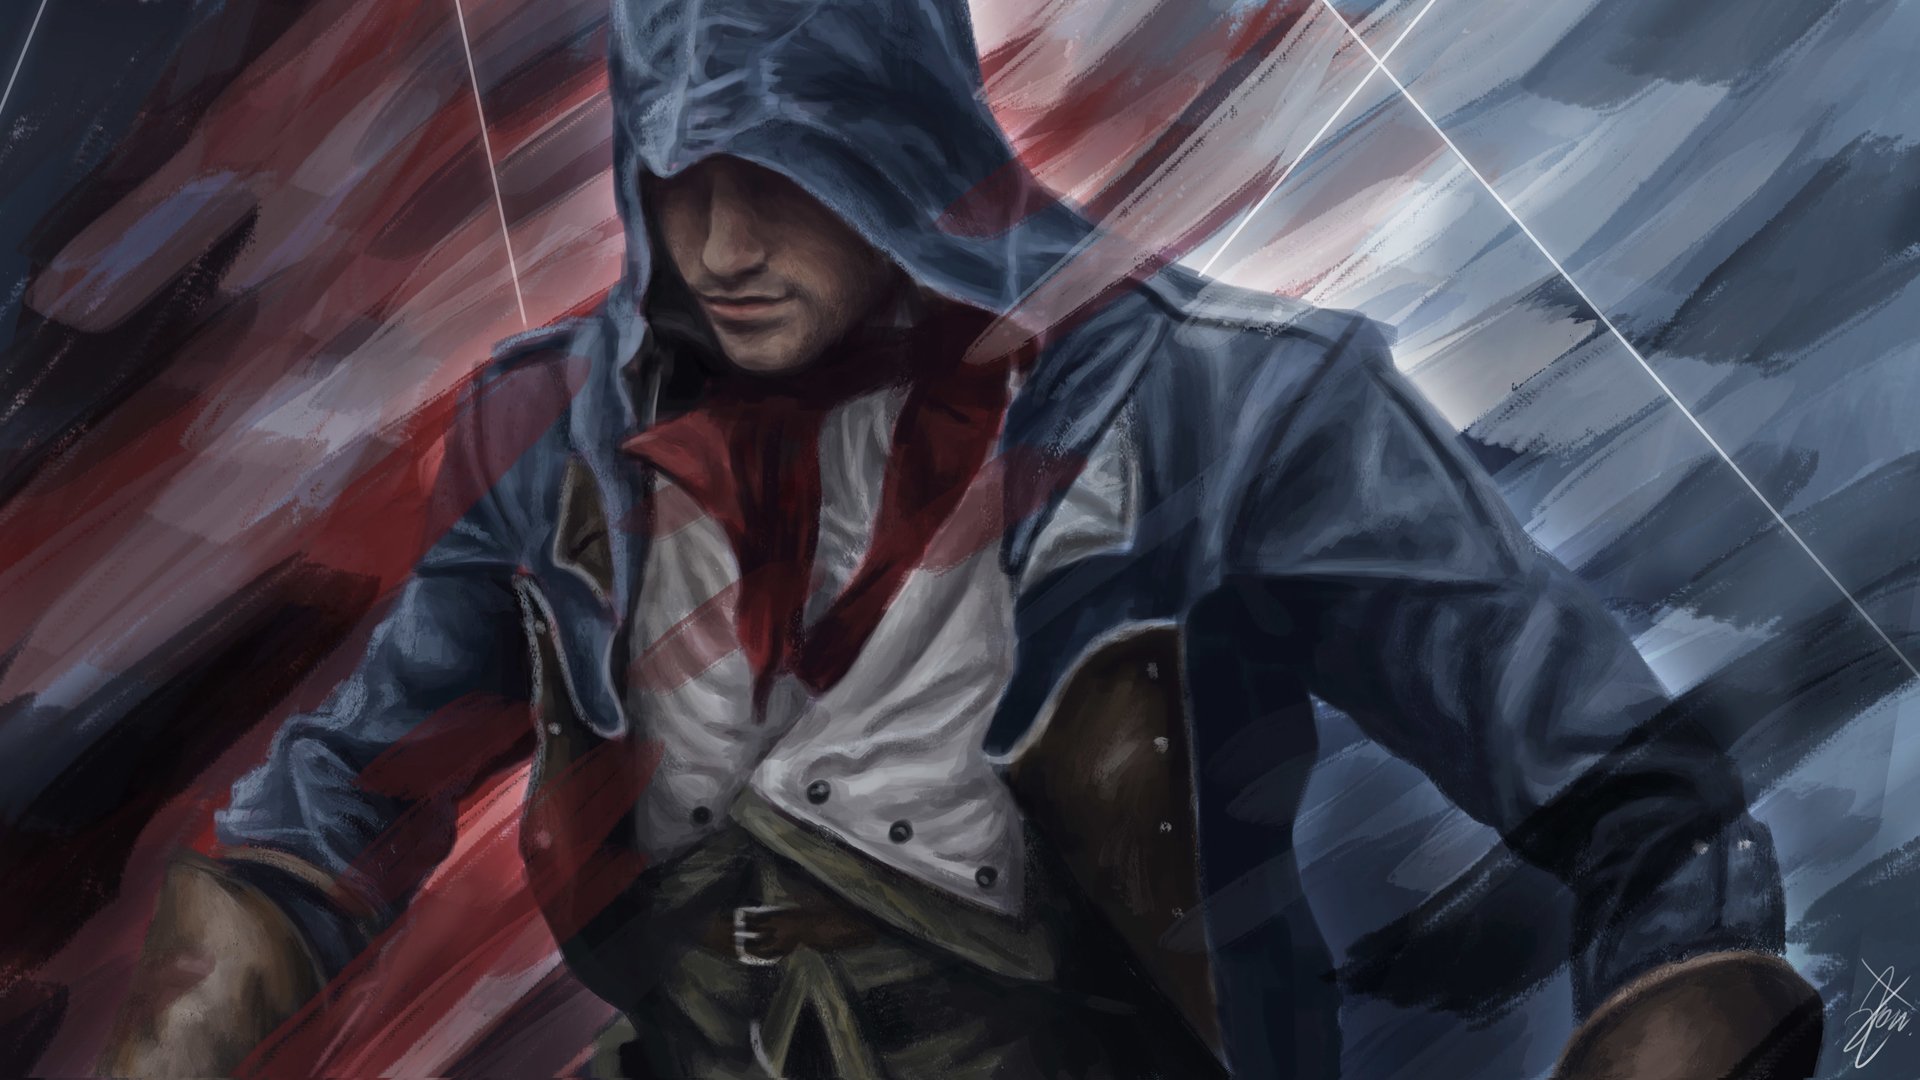 Assassins Creed Arno Art Wallpaper Hd